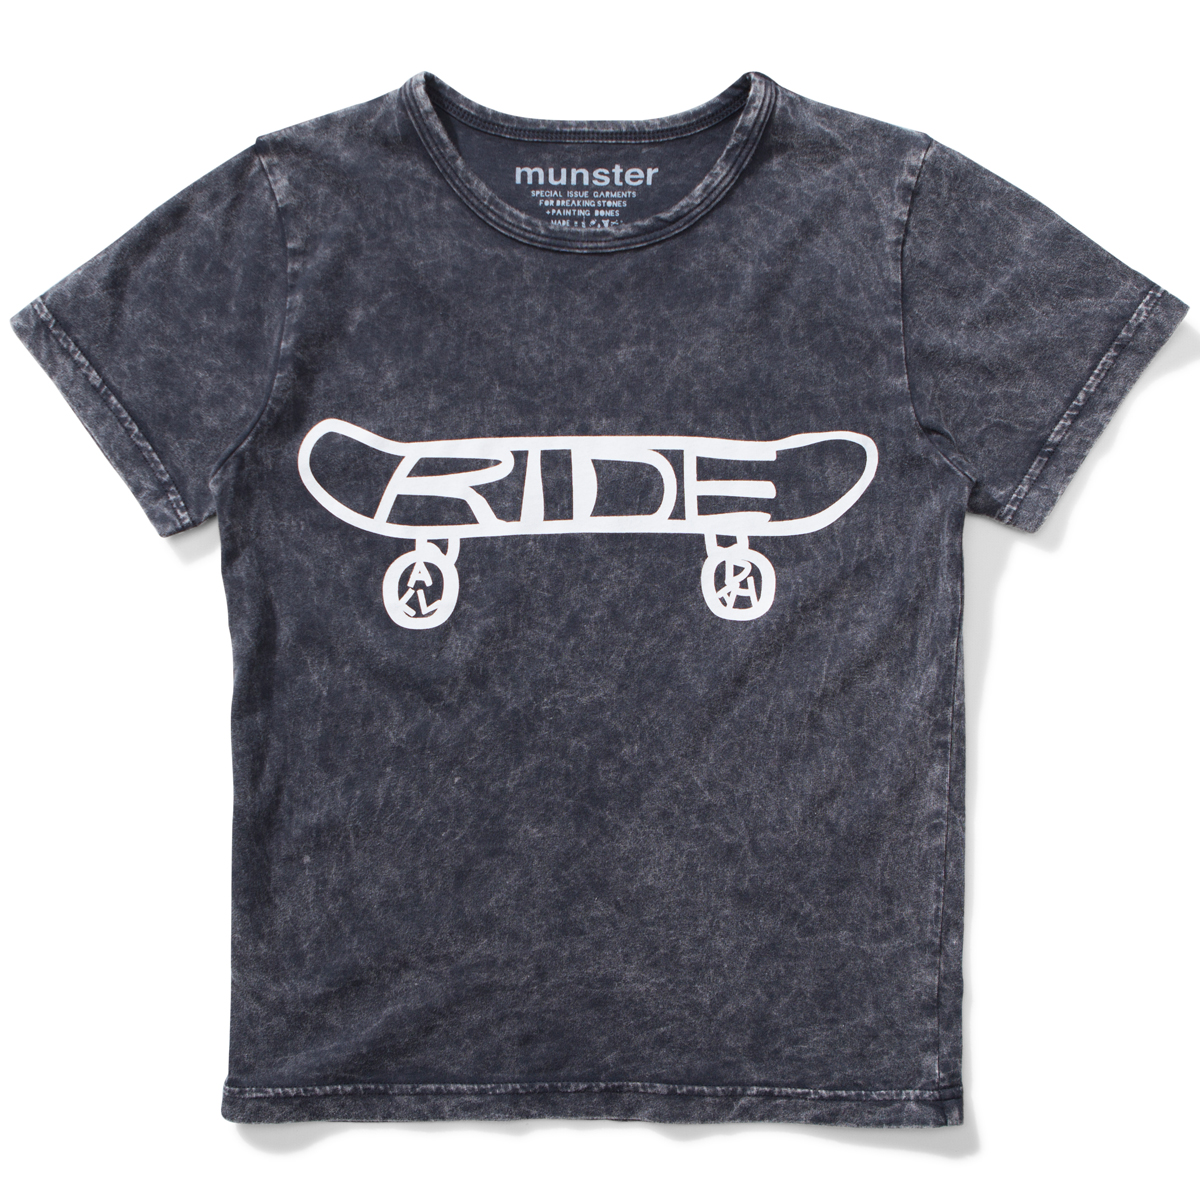 Munster Kids SS19 T Shirt RIde All Day Acid Black